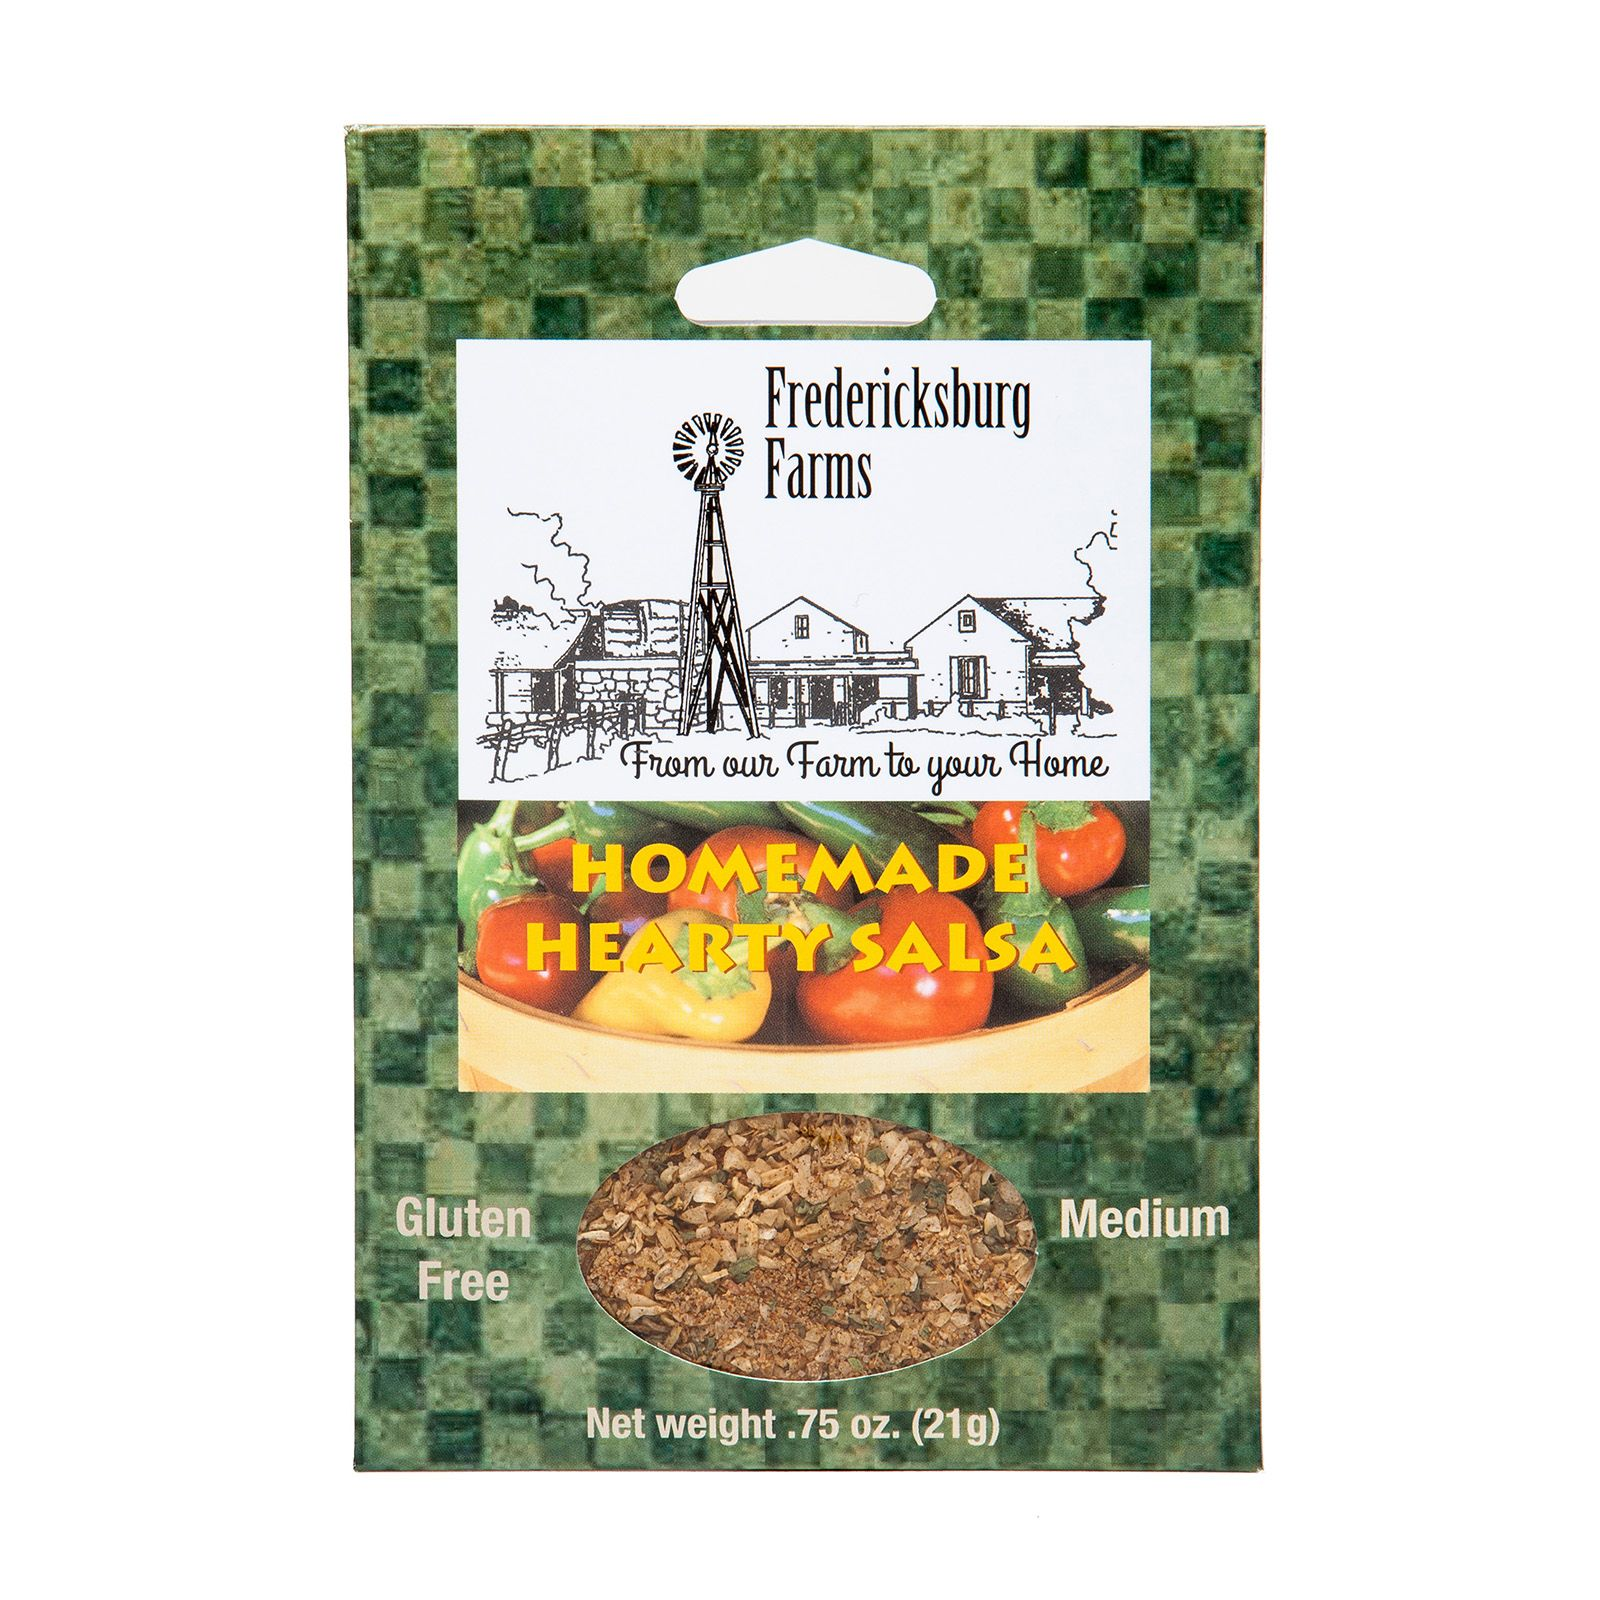 Fredericksburg Farms Homemade Hearty Salsa Mix